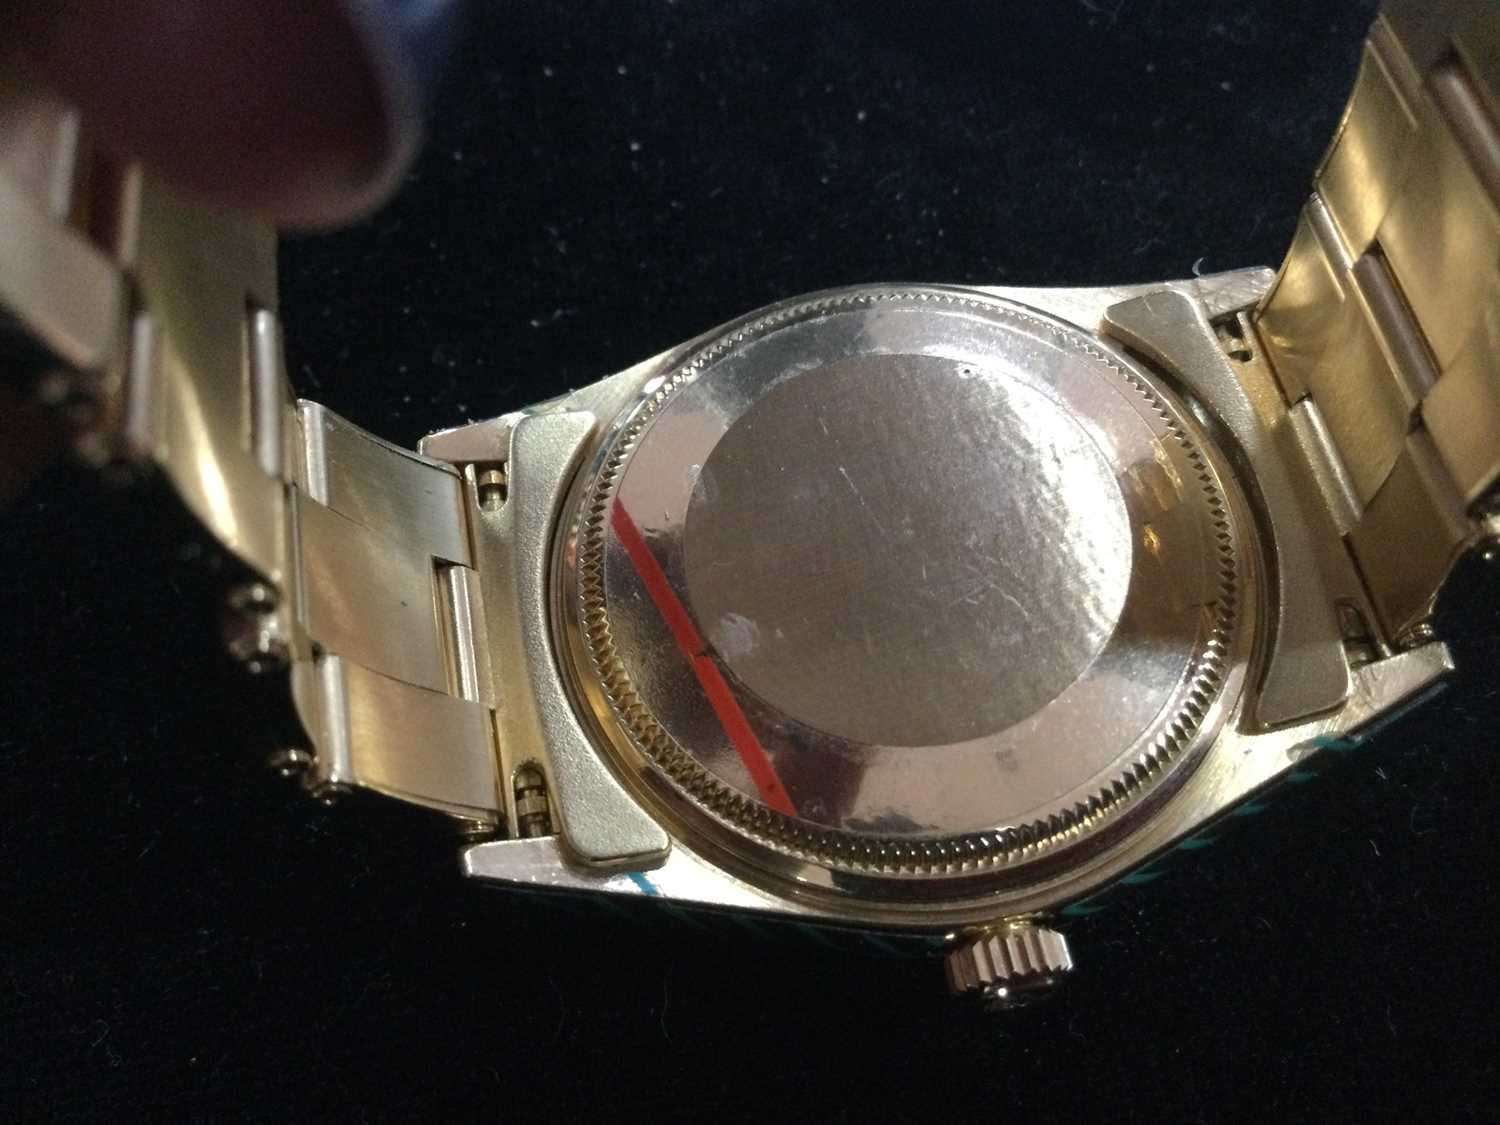 A GENTLEMAN'S ROLEX OYSTER PERPETUAL EIGHTEEN CARAT GOLD AUTOMATIC WRIST WATCH - Image 9 of 9